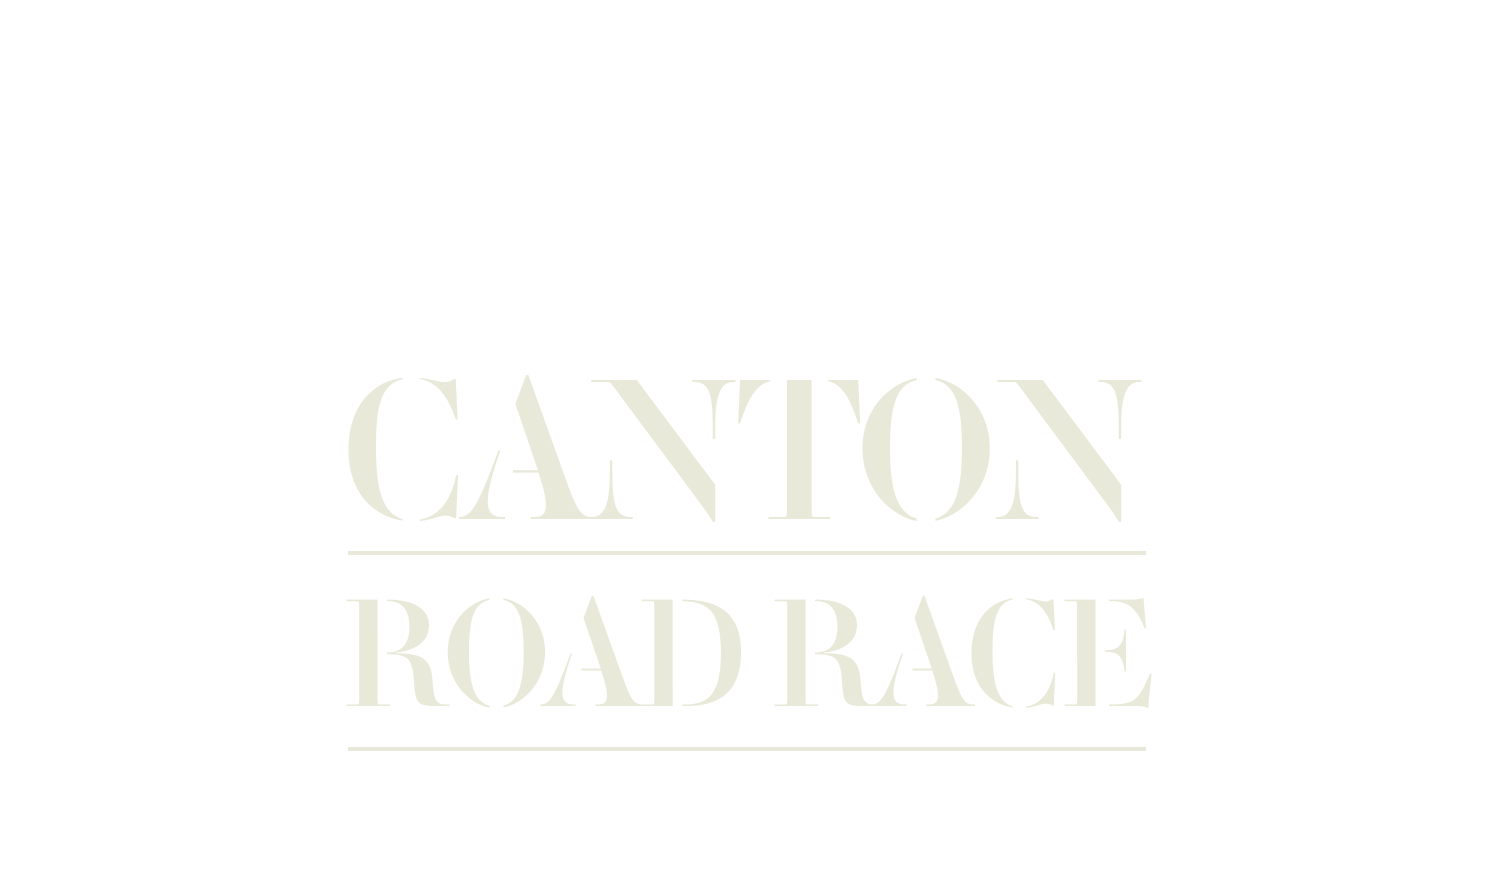 Canton Road Race